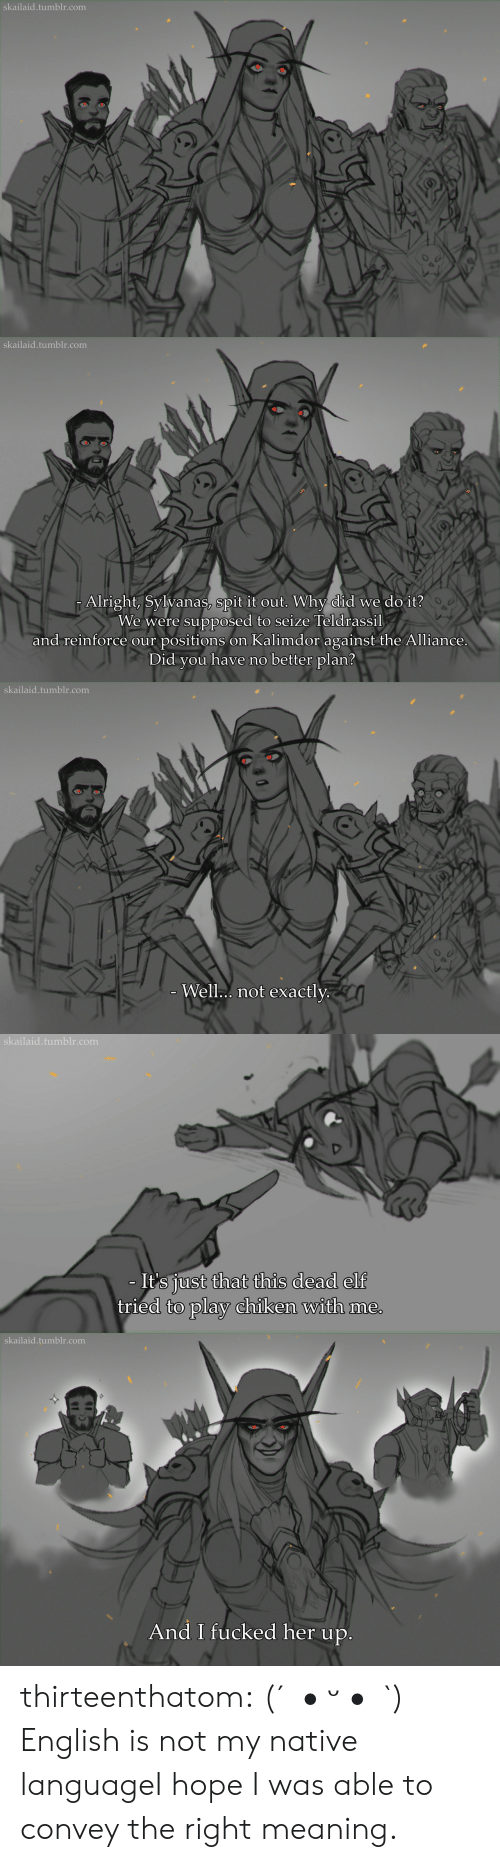 Elf, Tumblr, and Blog: skailaid.tumblr.com   skailaid.tumblr.com  Alright, Sylvanas, spit it out. Why did we do it?  We were supposed to seize Teldrassil  and reinforce our positions on Kalimdor against the Alliance.  Did you have no better plan?   skailaid.tumblr.com  - Well.. not exactly.   skailaid.tumblr.com  - It's just that this dead elf  tried to play chiken with me.   skailaid.tumblr.com  And I fucked her up. thirteenthatom:    (´。• ᵕ •。`)   English is not my native languageI hope I was able to convey the right meaning.